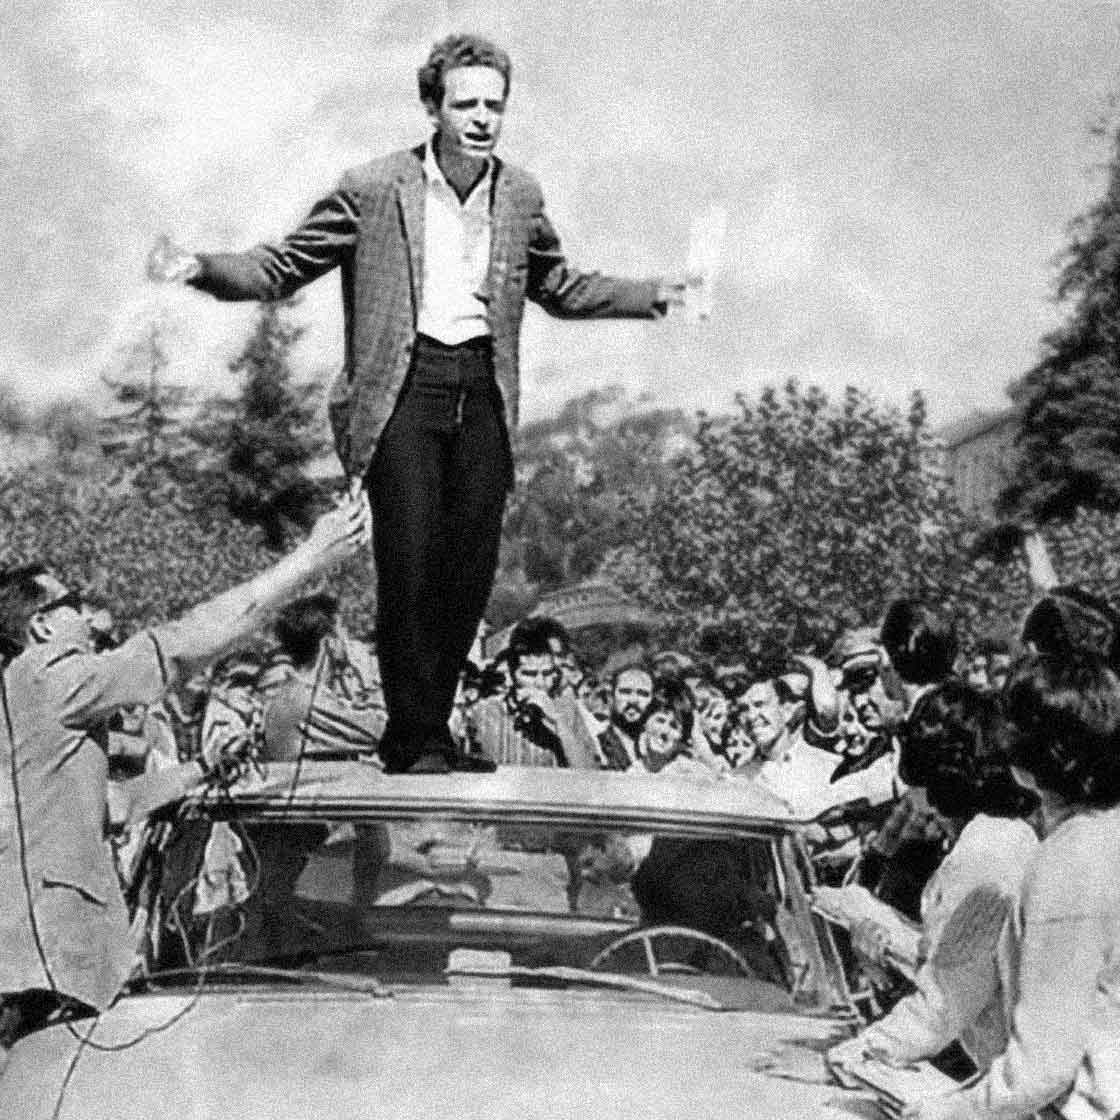 UC Berkeley, Sproul Hall Plaza, October 1 1964. Free Speech Movement advocates, including Mario Savio in this instance, speak from the roof of a police car.